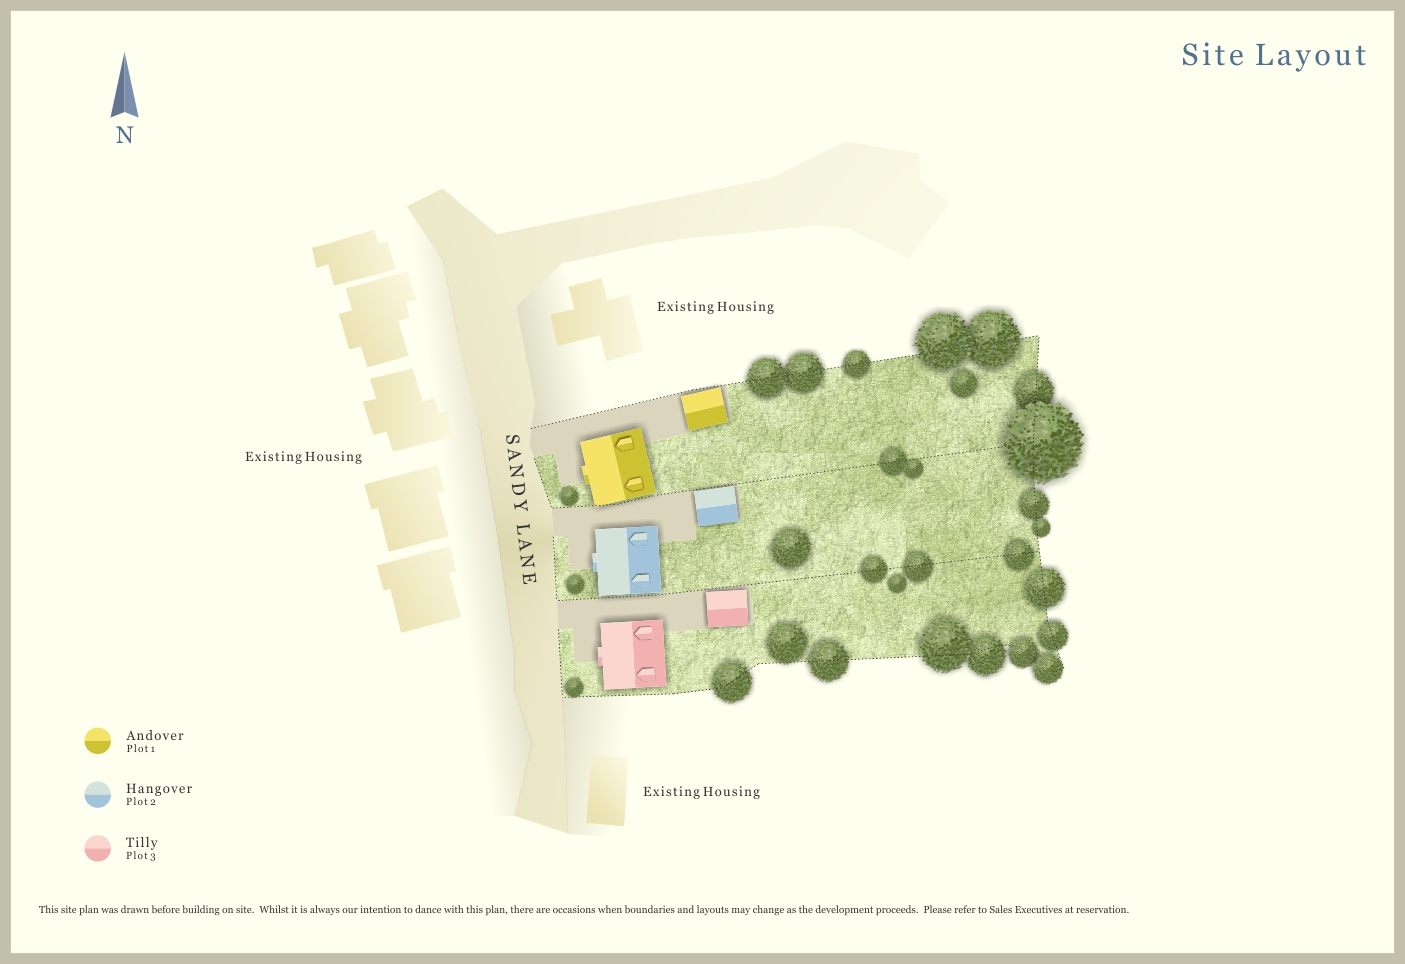 Site Plan Drawings Ben Williams – Site Drawings For Site Plan